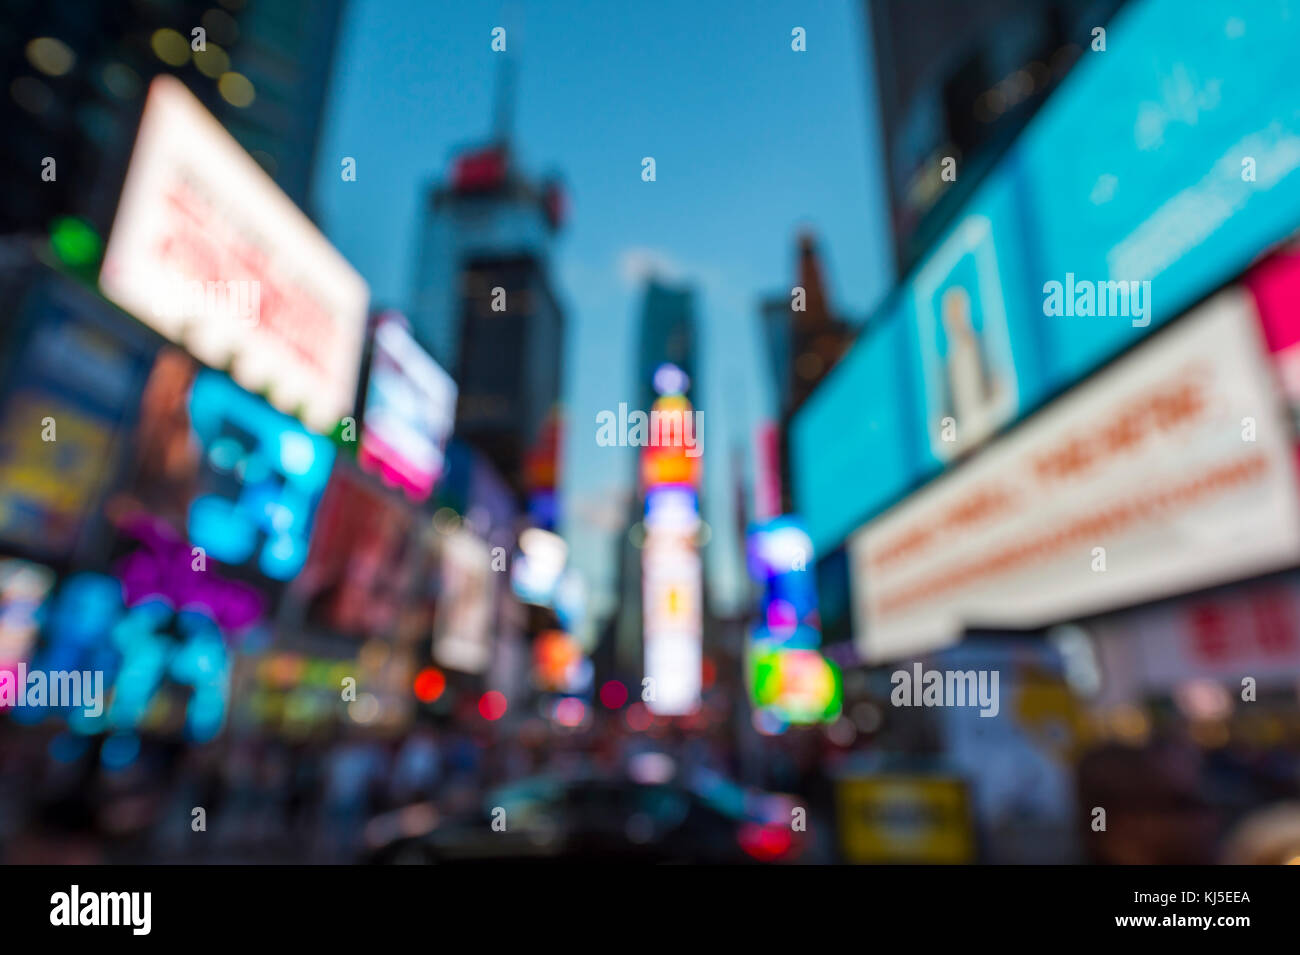 Defocused view of Times Square signage, taxi traffic, and holiday crowds in the lead-up to New Year's Eve in - Stock Image